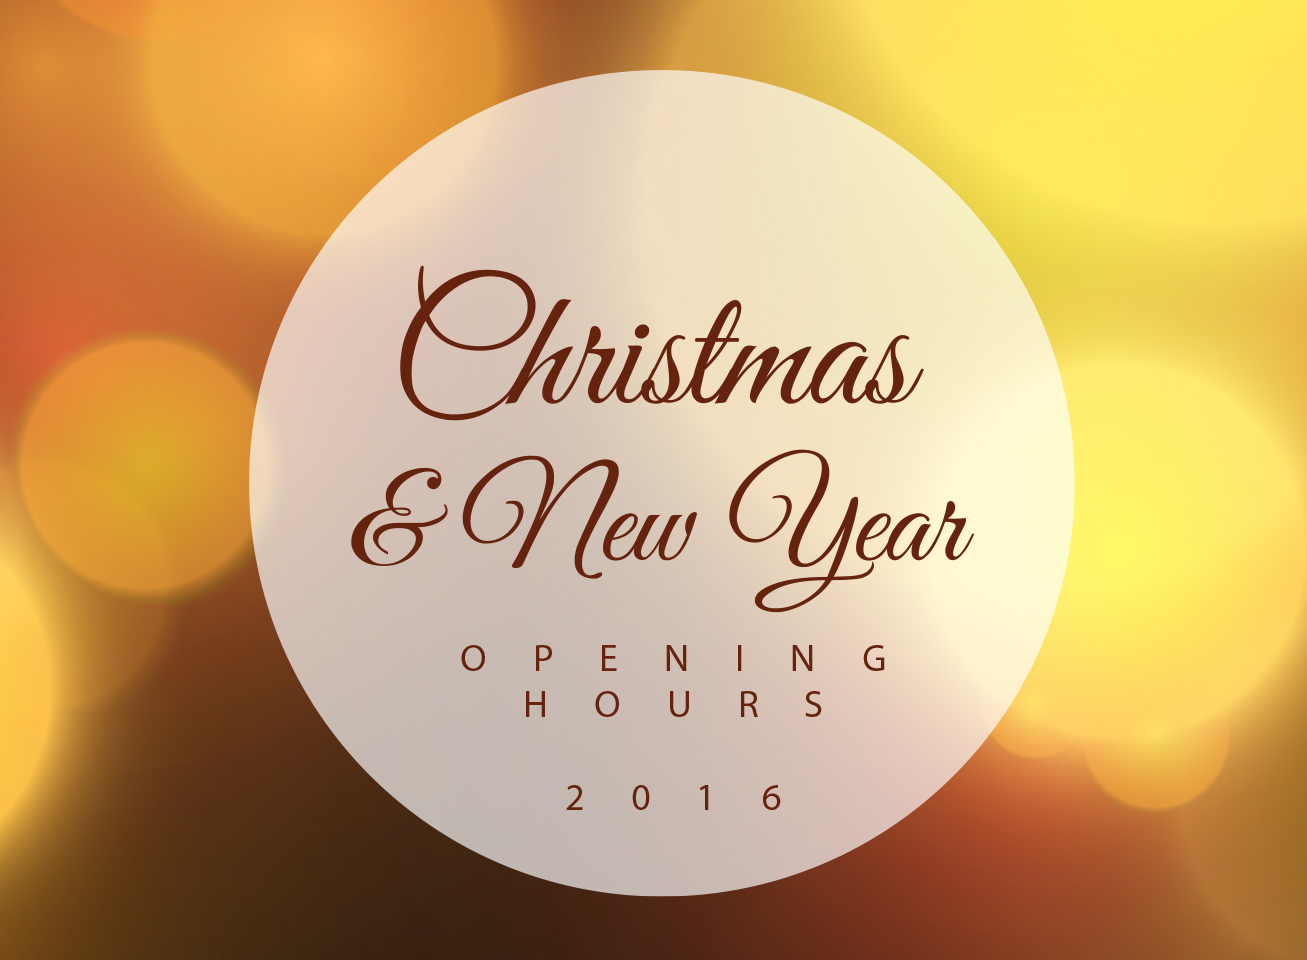 2016 Christmas & New Year Opening Hours